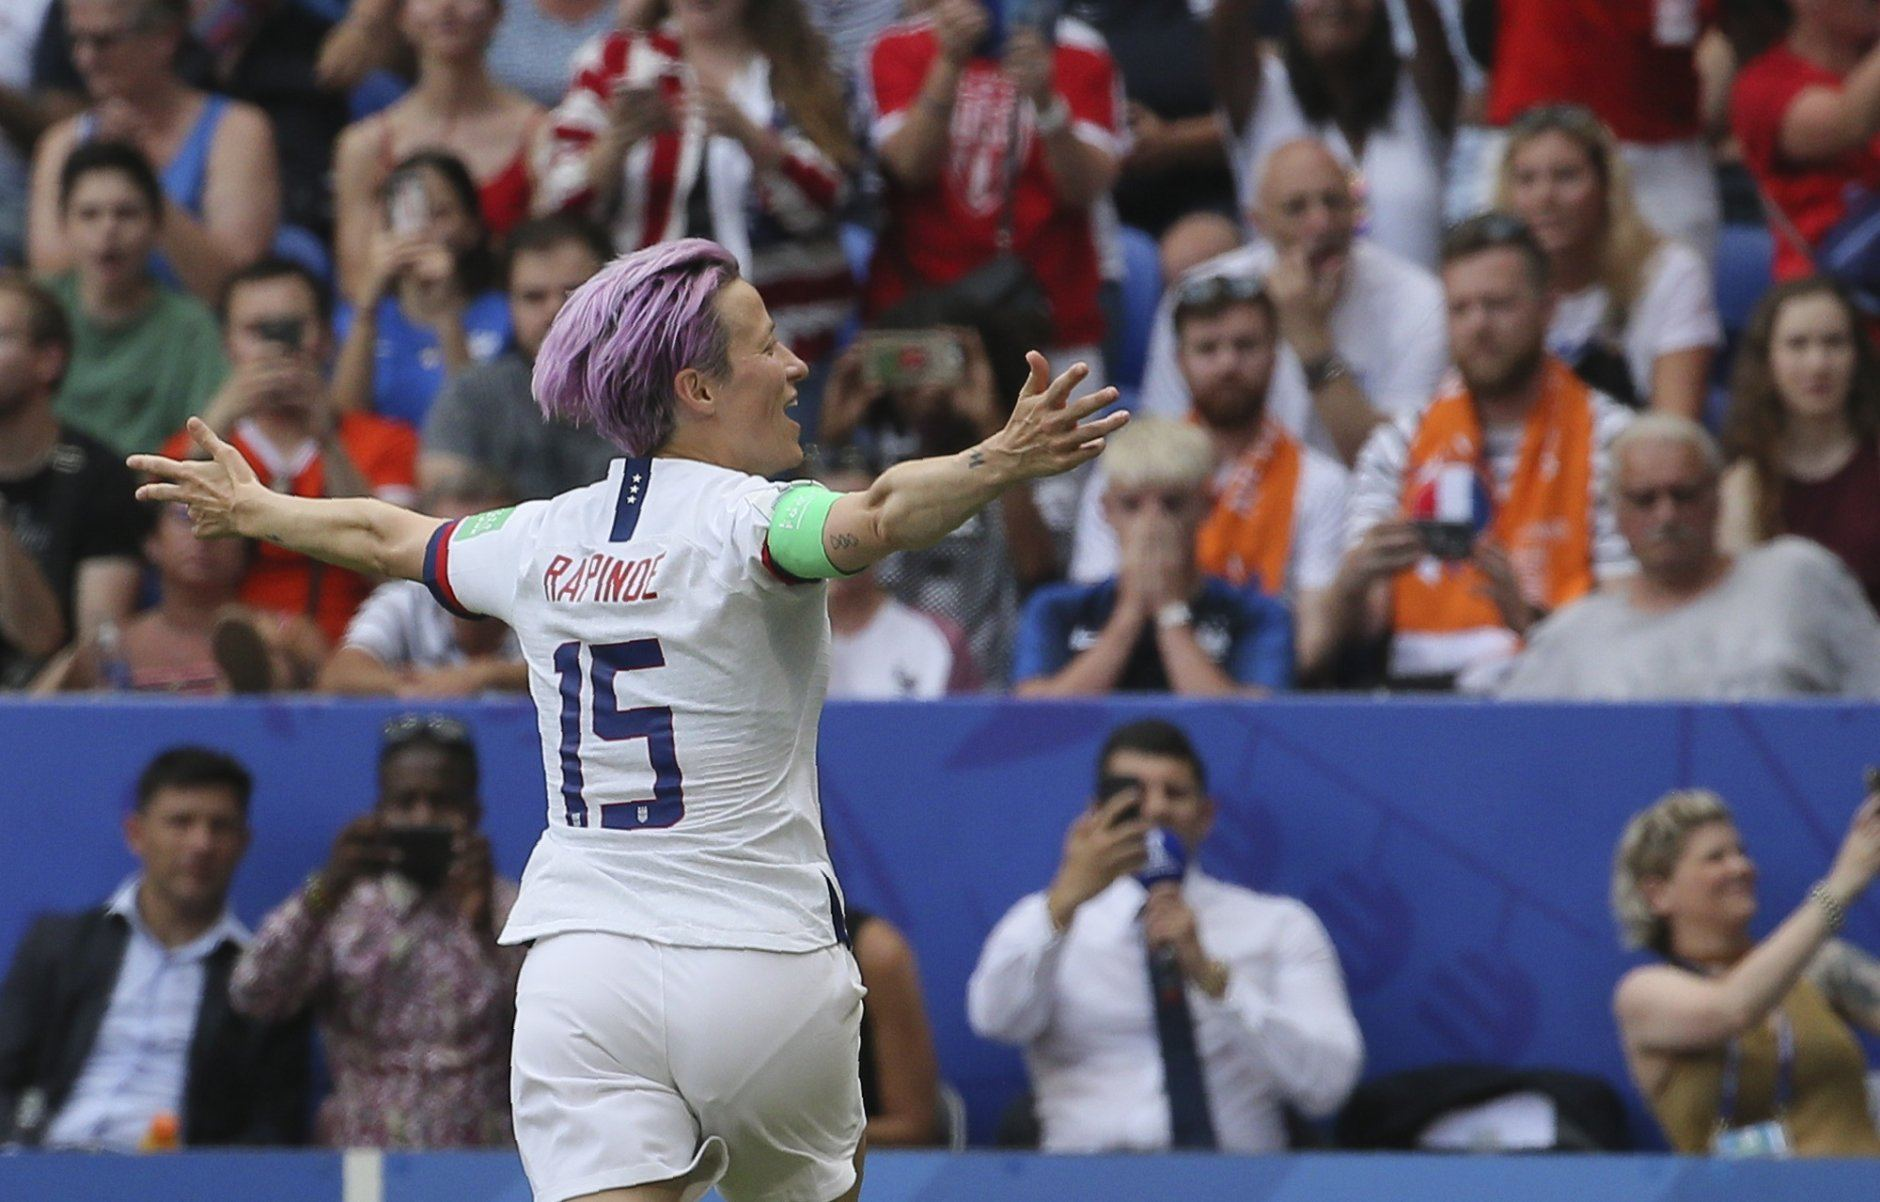 United States' Megan Rapinoe celebrates after scoring her side's opening goal during the Women's World Cup final soccer match between US and The Netherlands at the Stade de Lyon in Decines, outside Lyon, France, Sunday, July 7, 2019. (AP Photo/David Vincent)